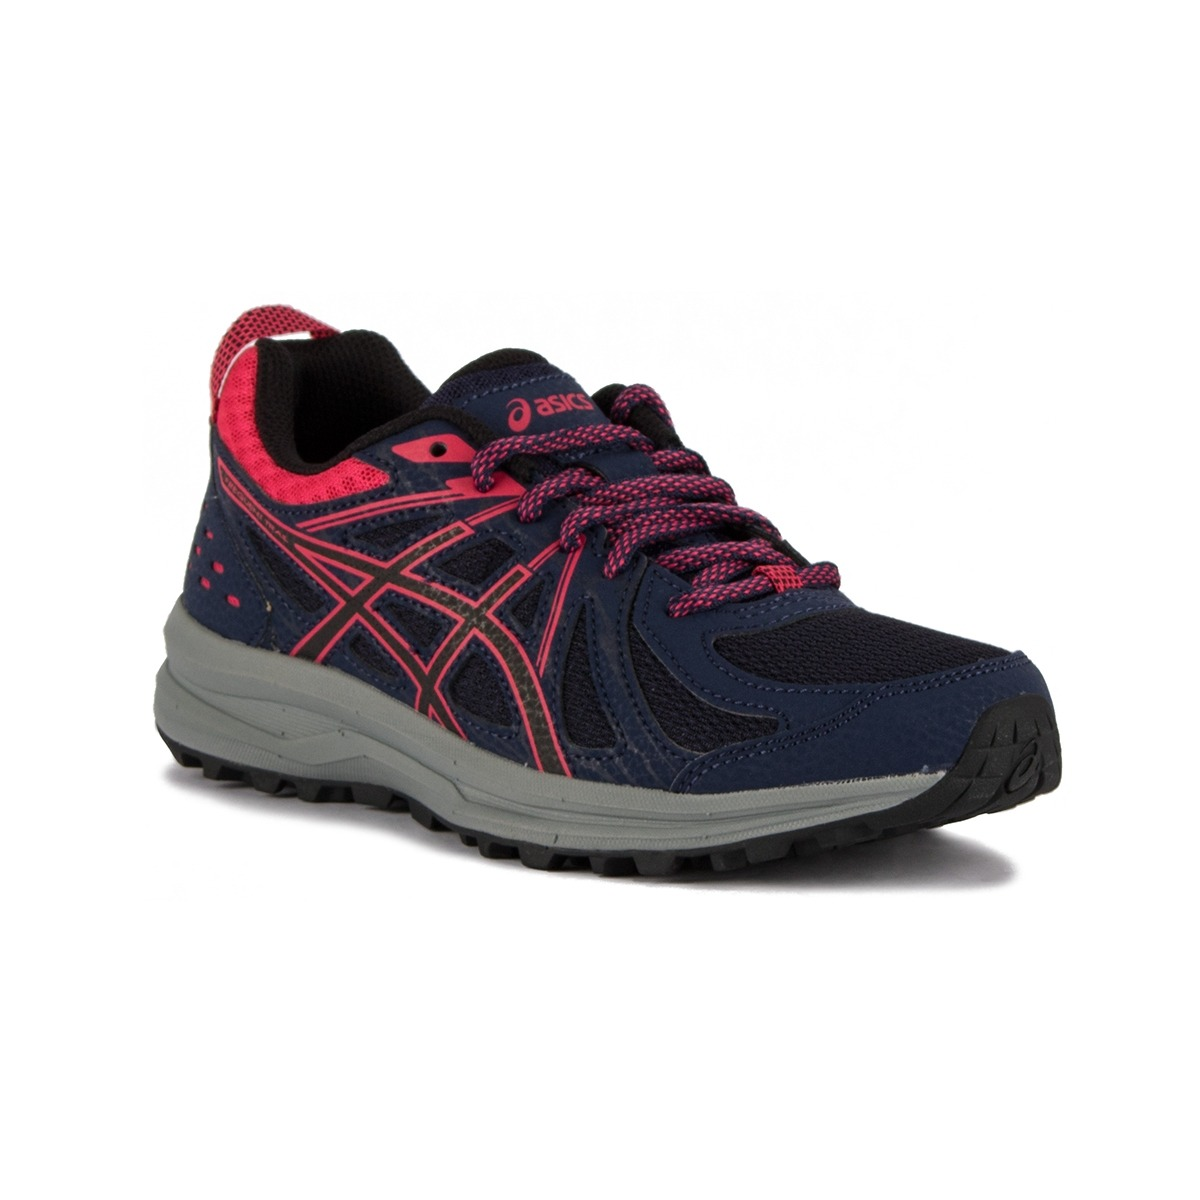 Asics Frequent Trail Peacoat Pixel Pink Azul Rosa Mujer